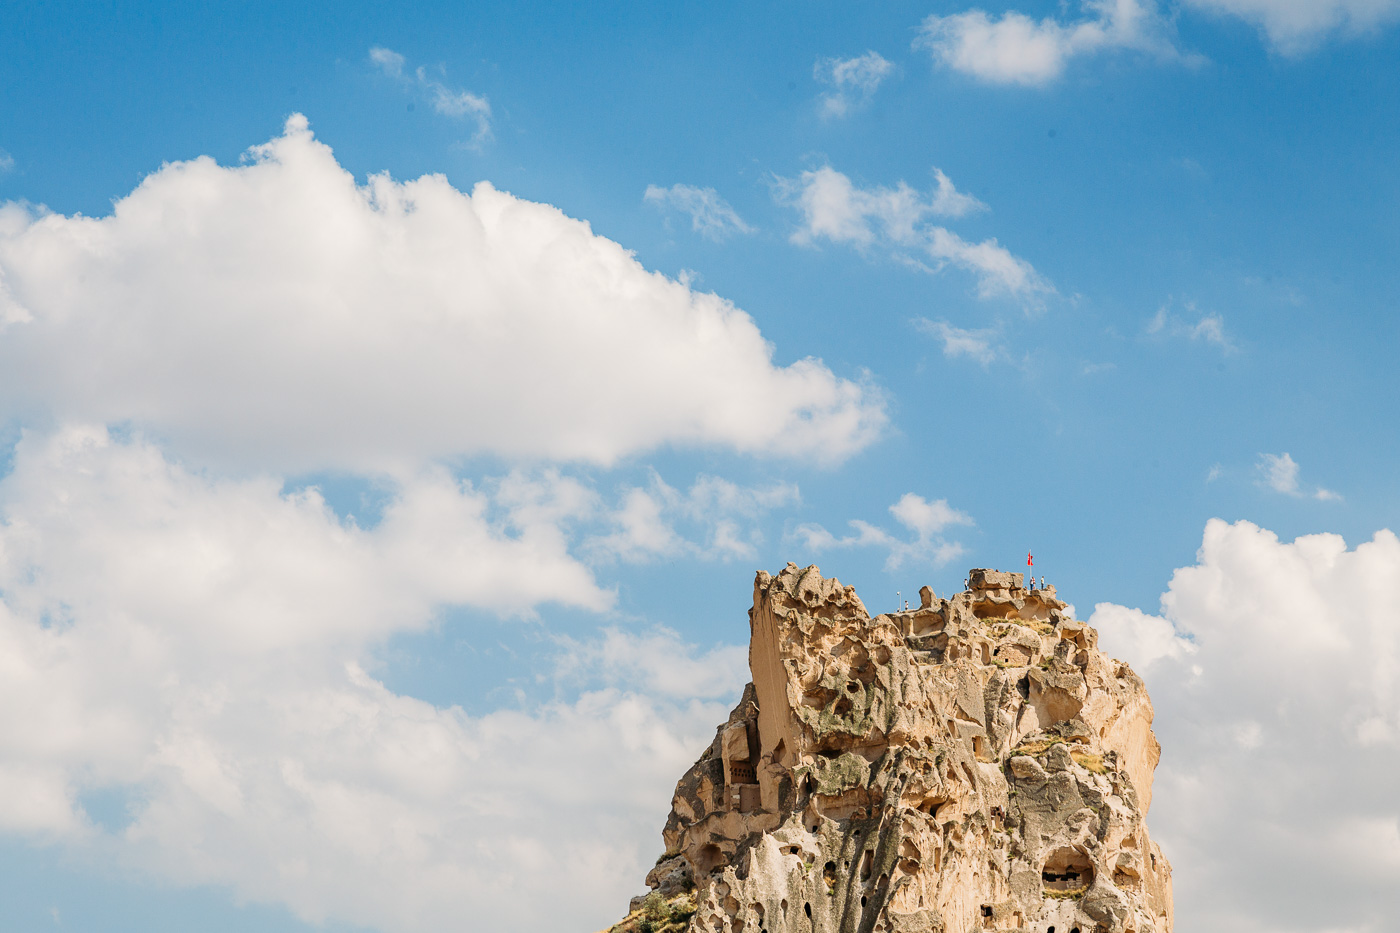 Uchisar Castle in Cappadocia is one of the region's most iconic examples of cave dwelling Anatolian civilizations